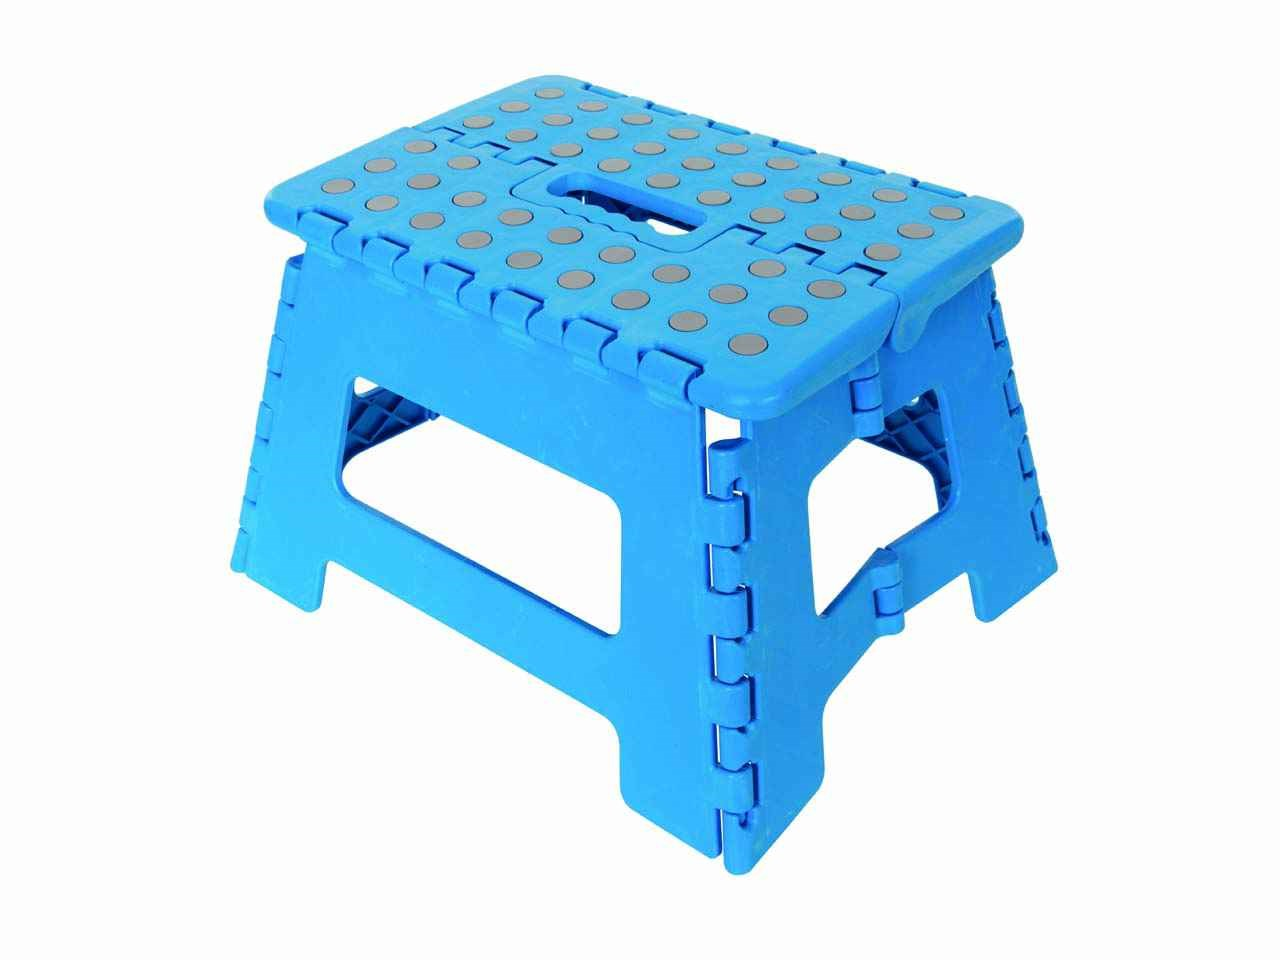 Swell Silverline 968731 Folding Step Stool 150Kg Alphanode Cool Chair Designs And Ideas Alphanodeonline